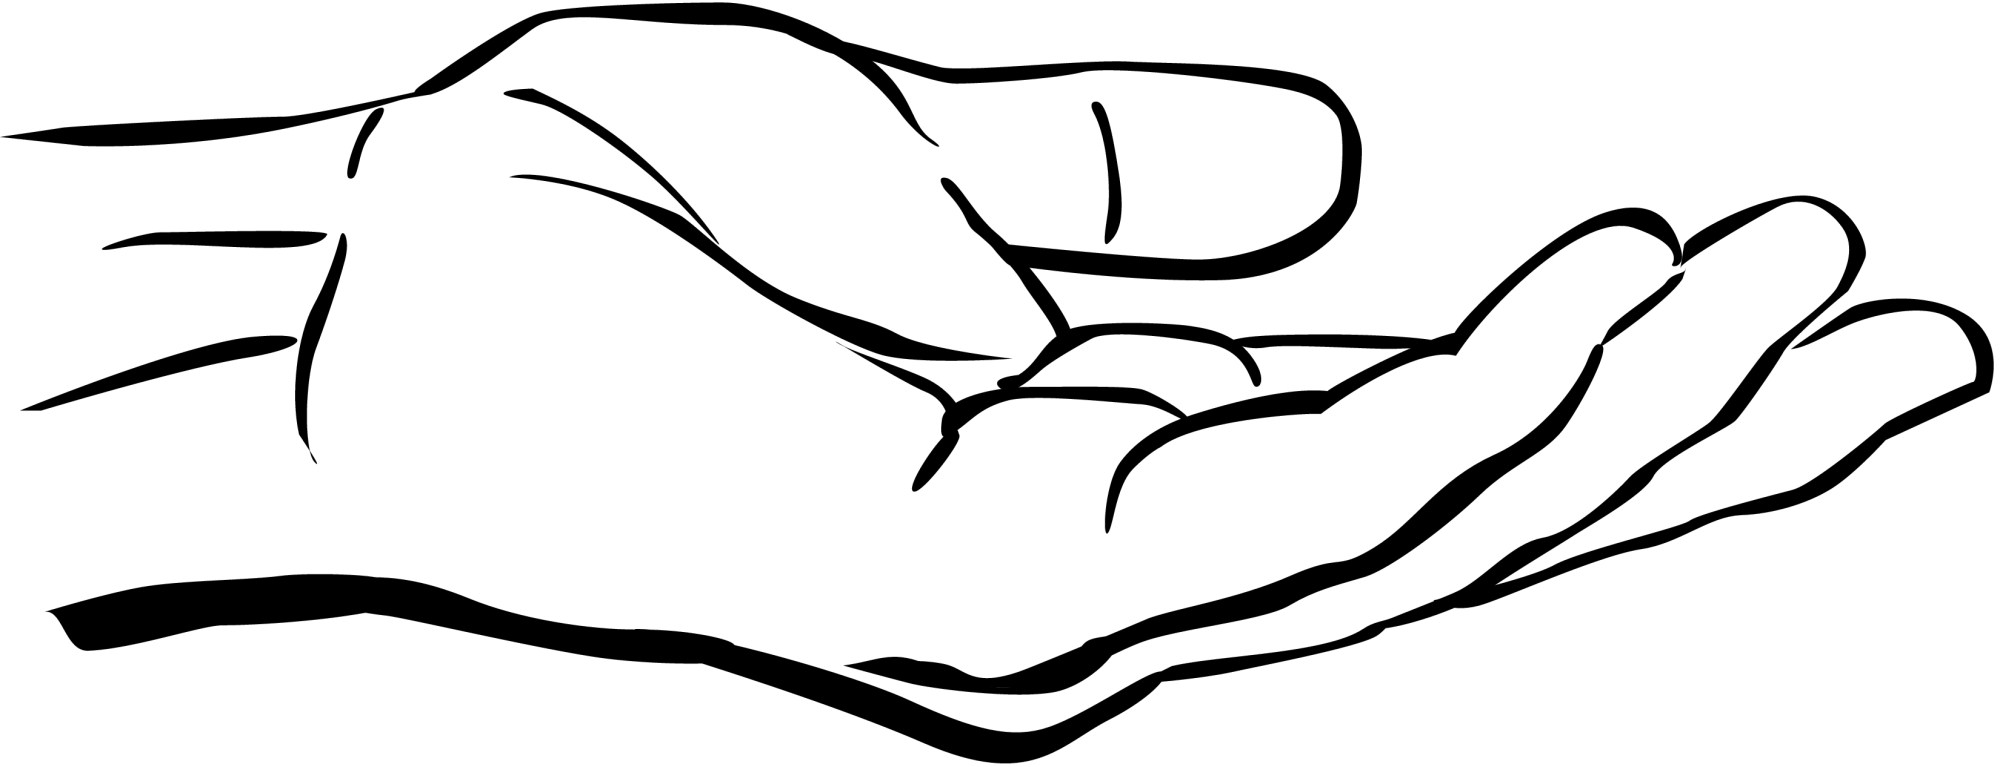 hight resolution of clipart hand